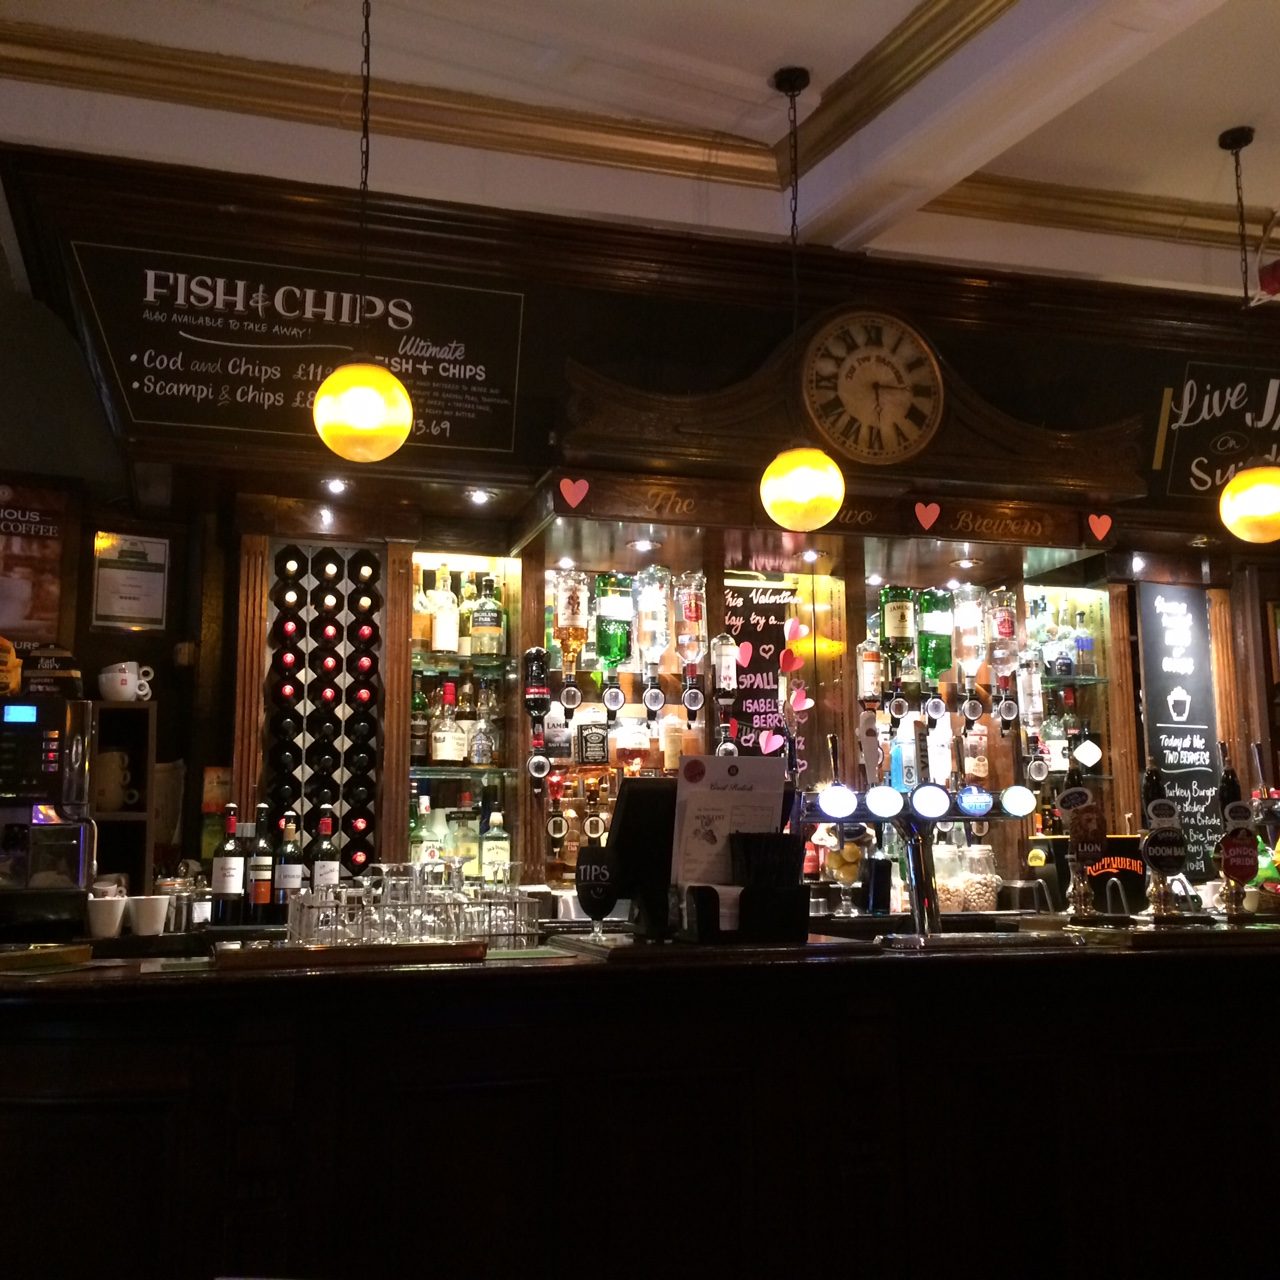 Pub lunch at Two Brewers (Covent Garden, London) | whyiamnotskinny